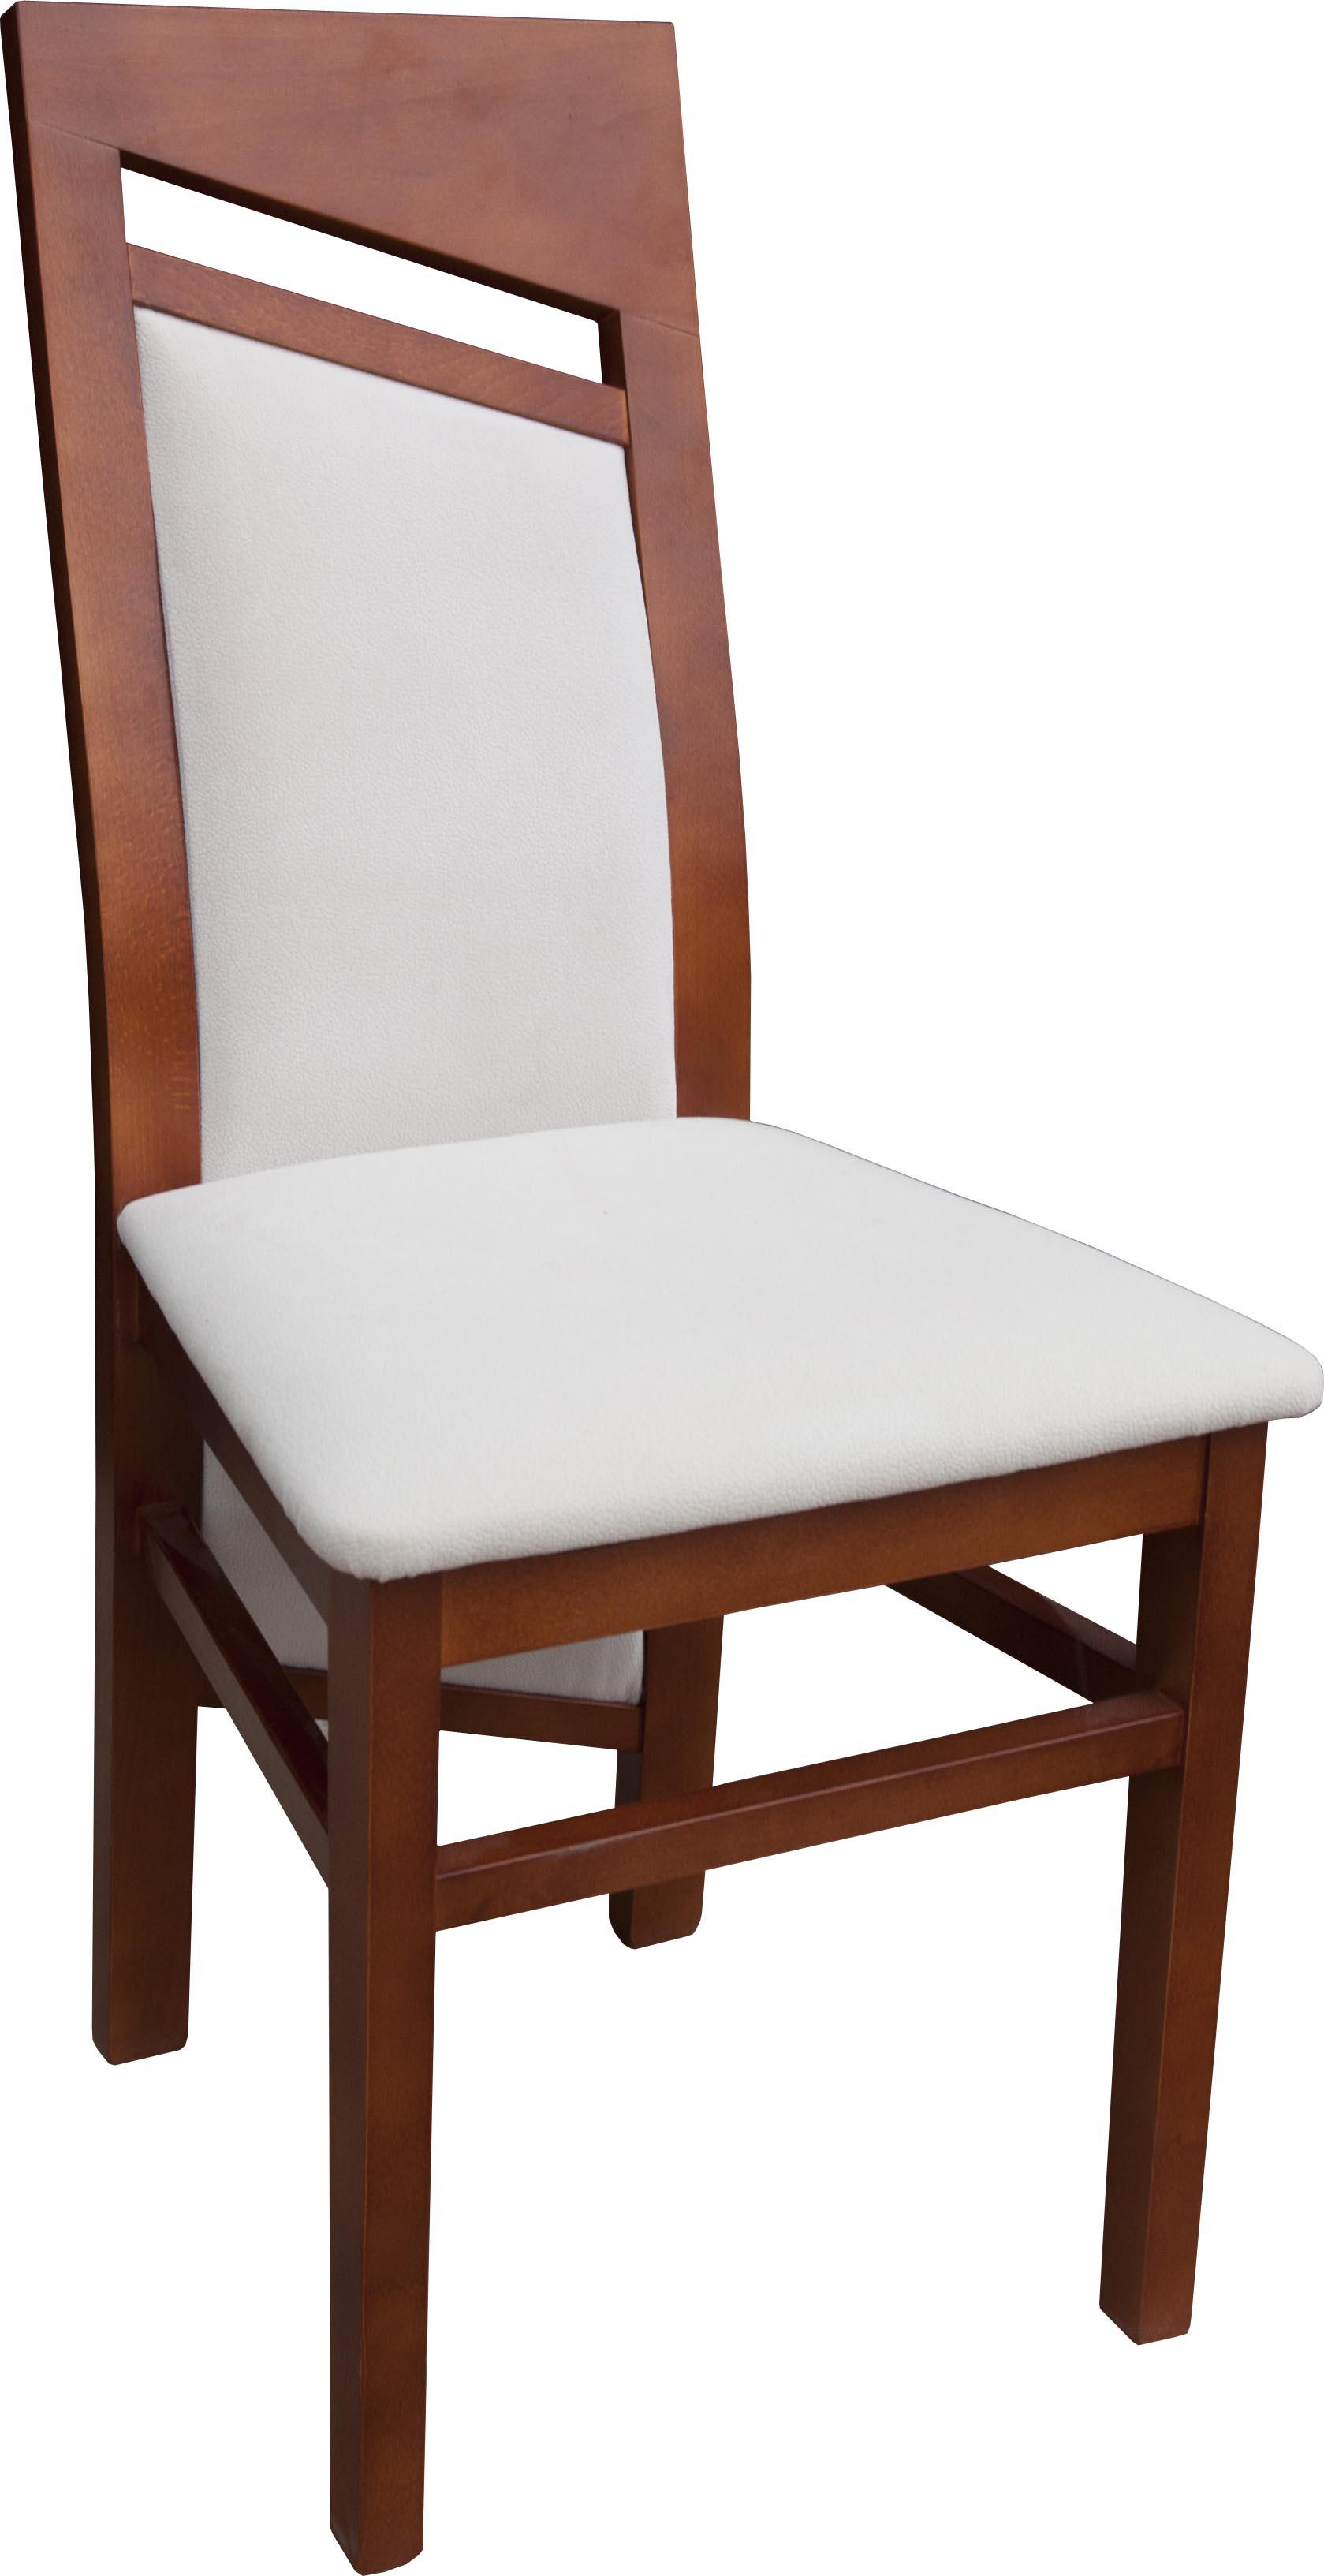 Chaise contemporaine pour table de salle manger quotes for Table et chaise pour salle a manger